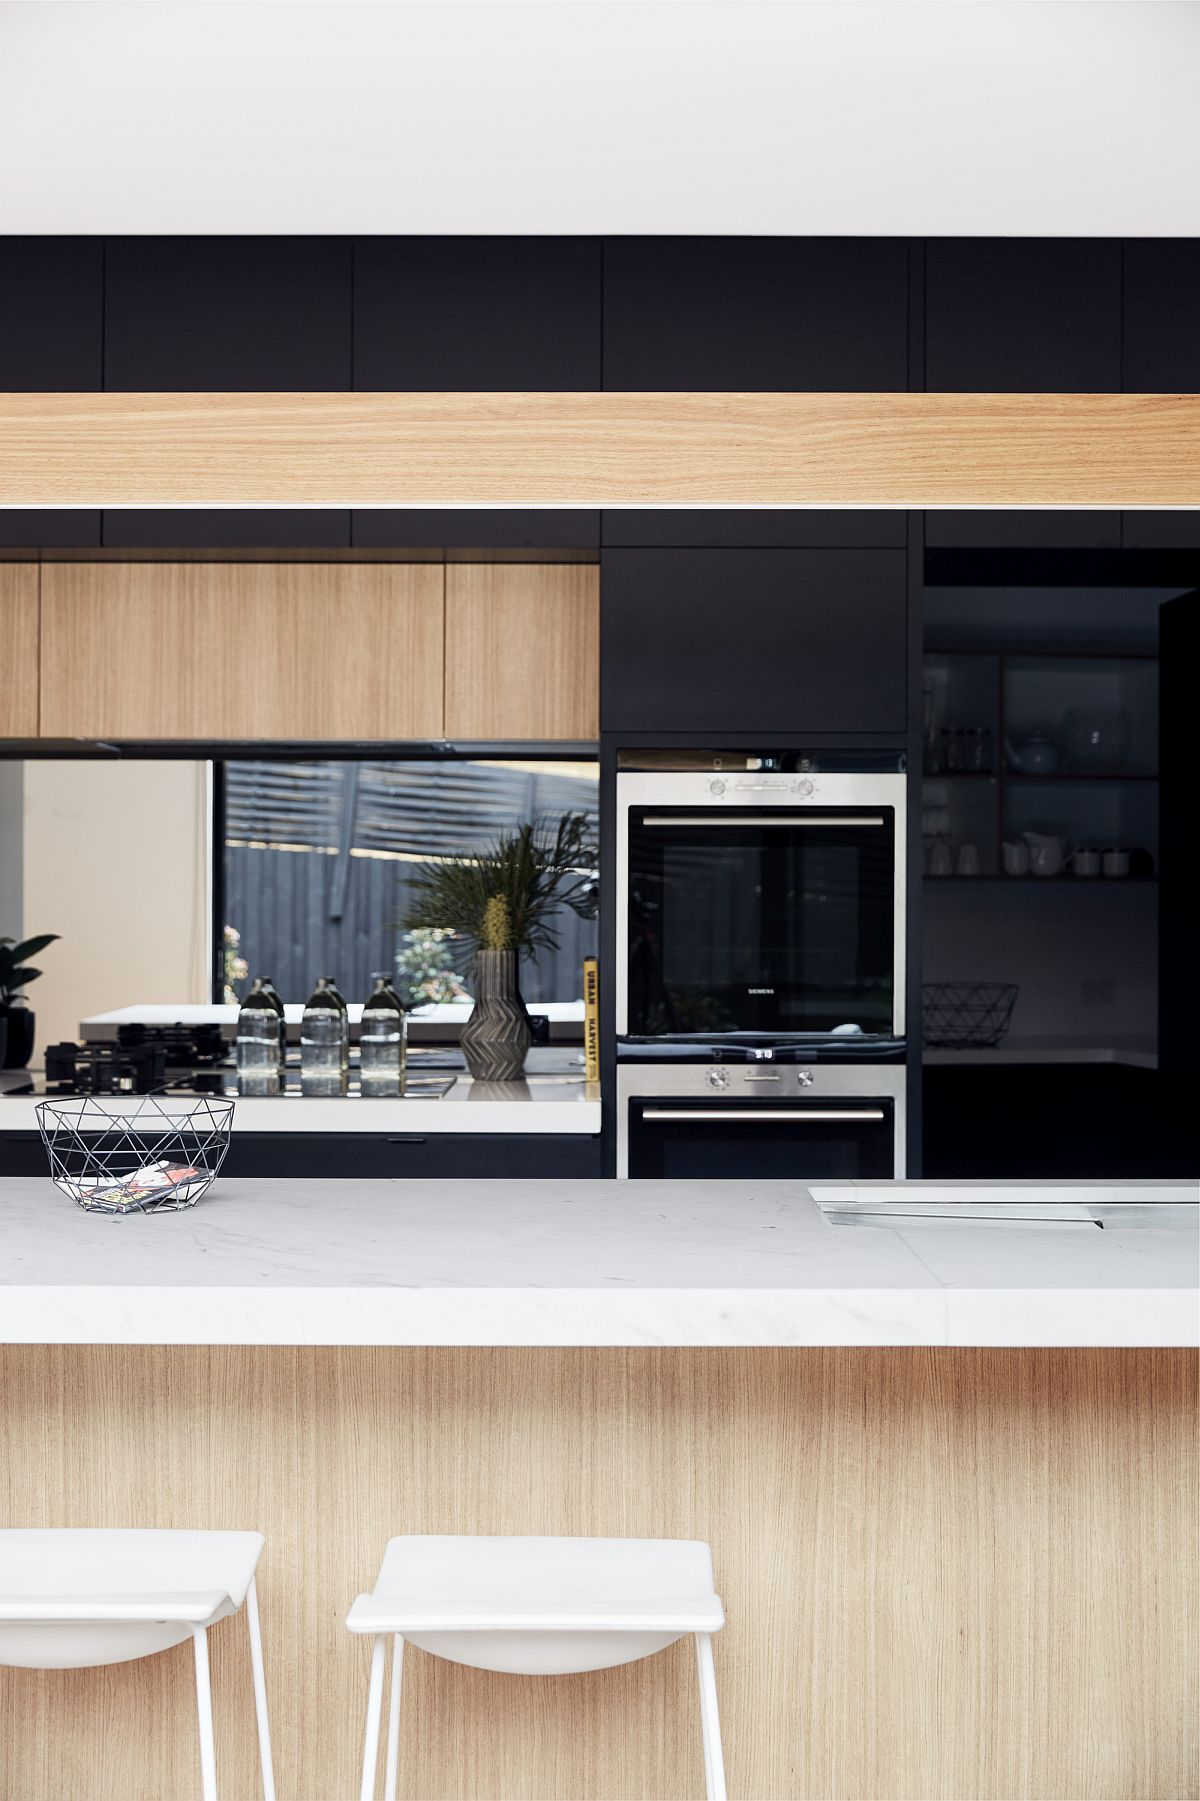 Smart modern kitchen combines black shelves with light wooden finishes